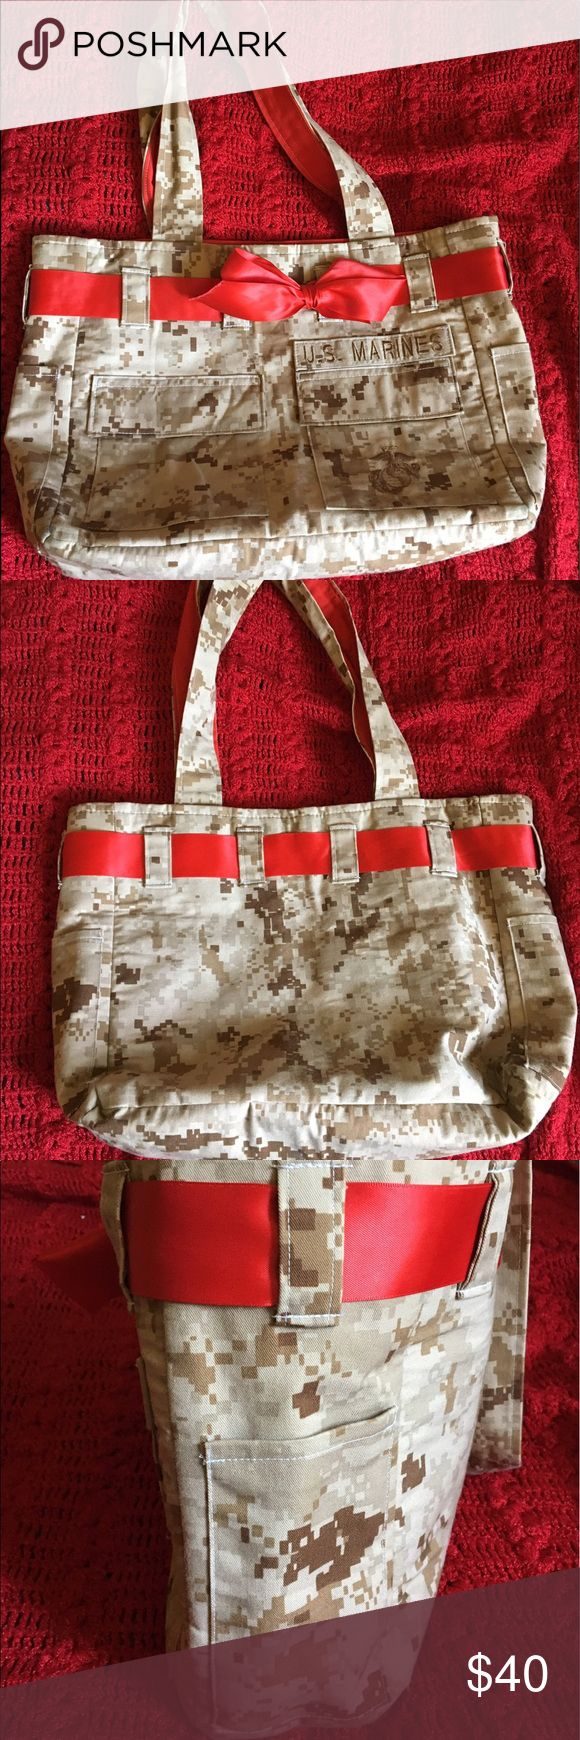 USMC Tote Custom made USMC tote. 4 inside pocket, 2 side pockets. Red ribbon bow goes all around the tote and is changeable(not sewn on). The two front pockets are just a design not actual pockets. Has U.S. Marines patch on the right side of the front. Room available to add your loved ones name on the left. Made with Desert Camo Uniform. Perfectly hand made. Clean and perfect condition.  It was barely used. NO TRADES, NO OFFERS!! PRICE IS FIRM. Bags Totes